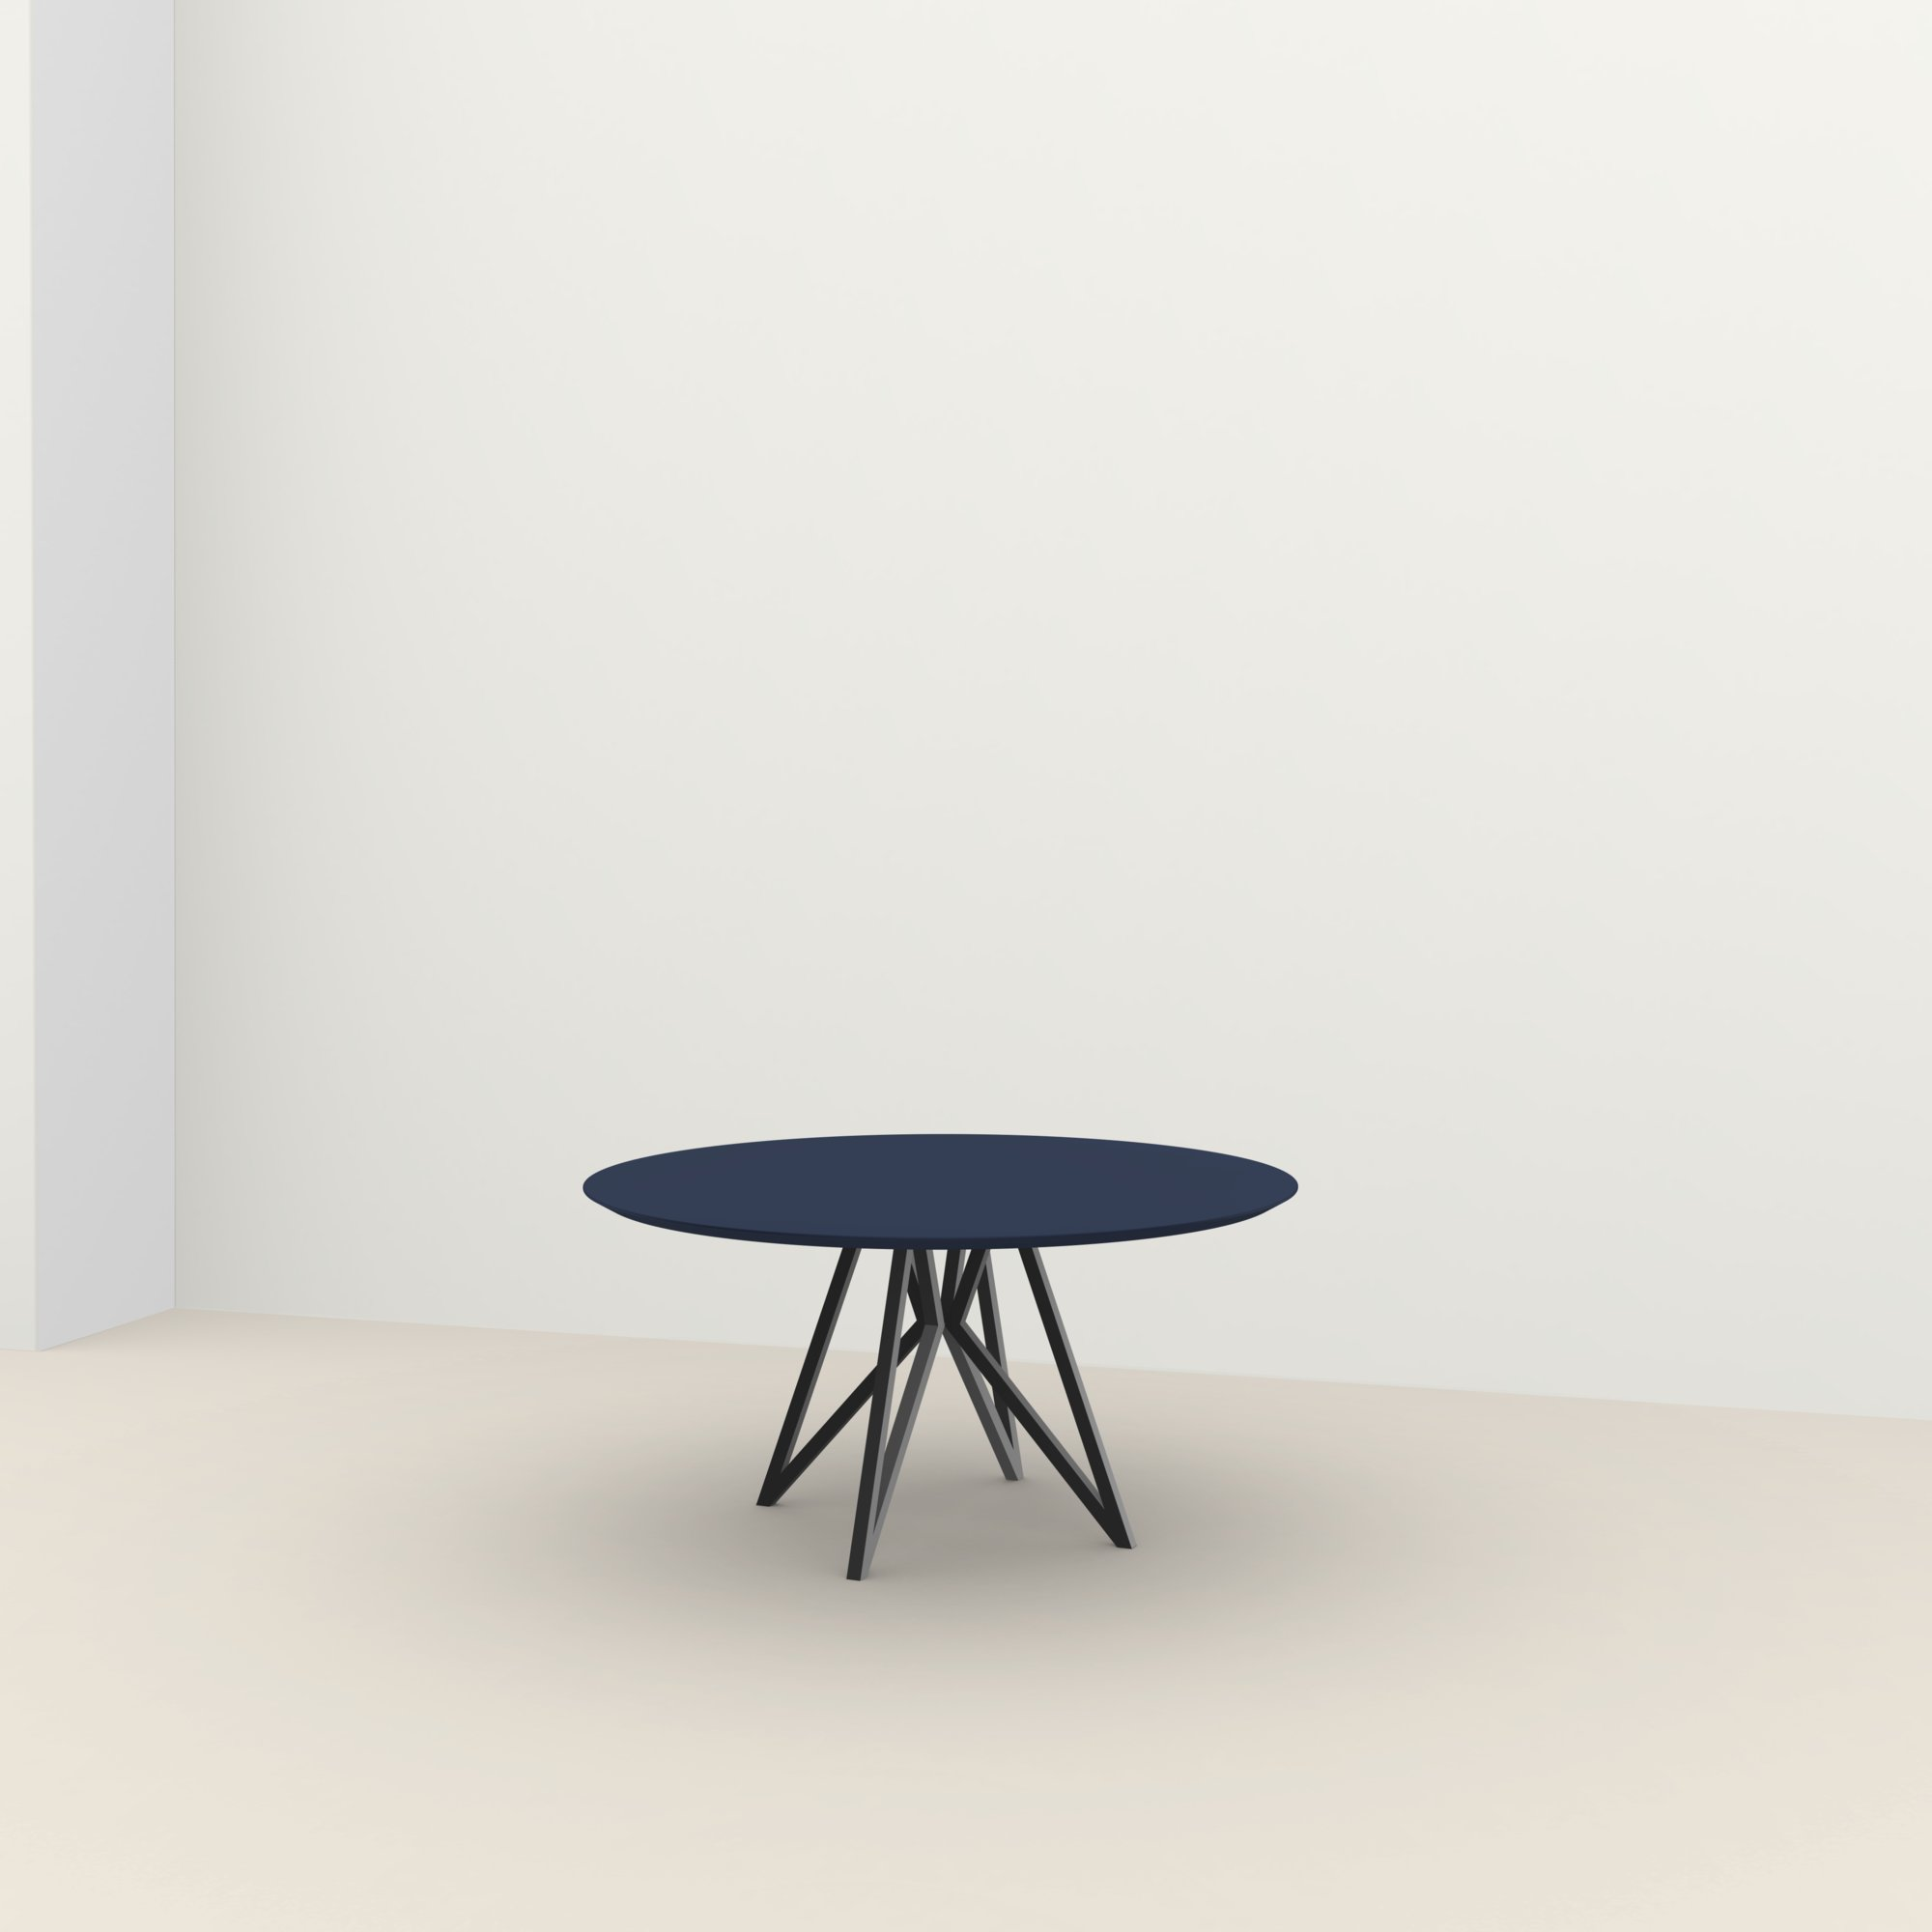 Ronde design tafel op maat | Butterfly Quadpod Steel black powdercoating | HPL Fenix blu fes | Studio HENK |